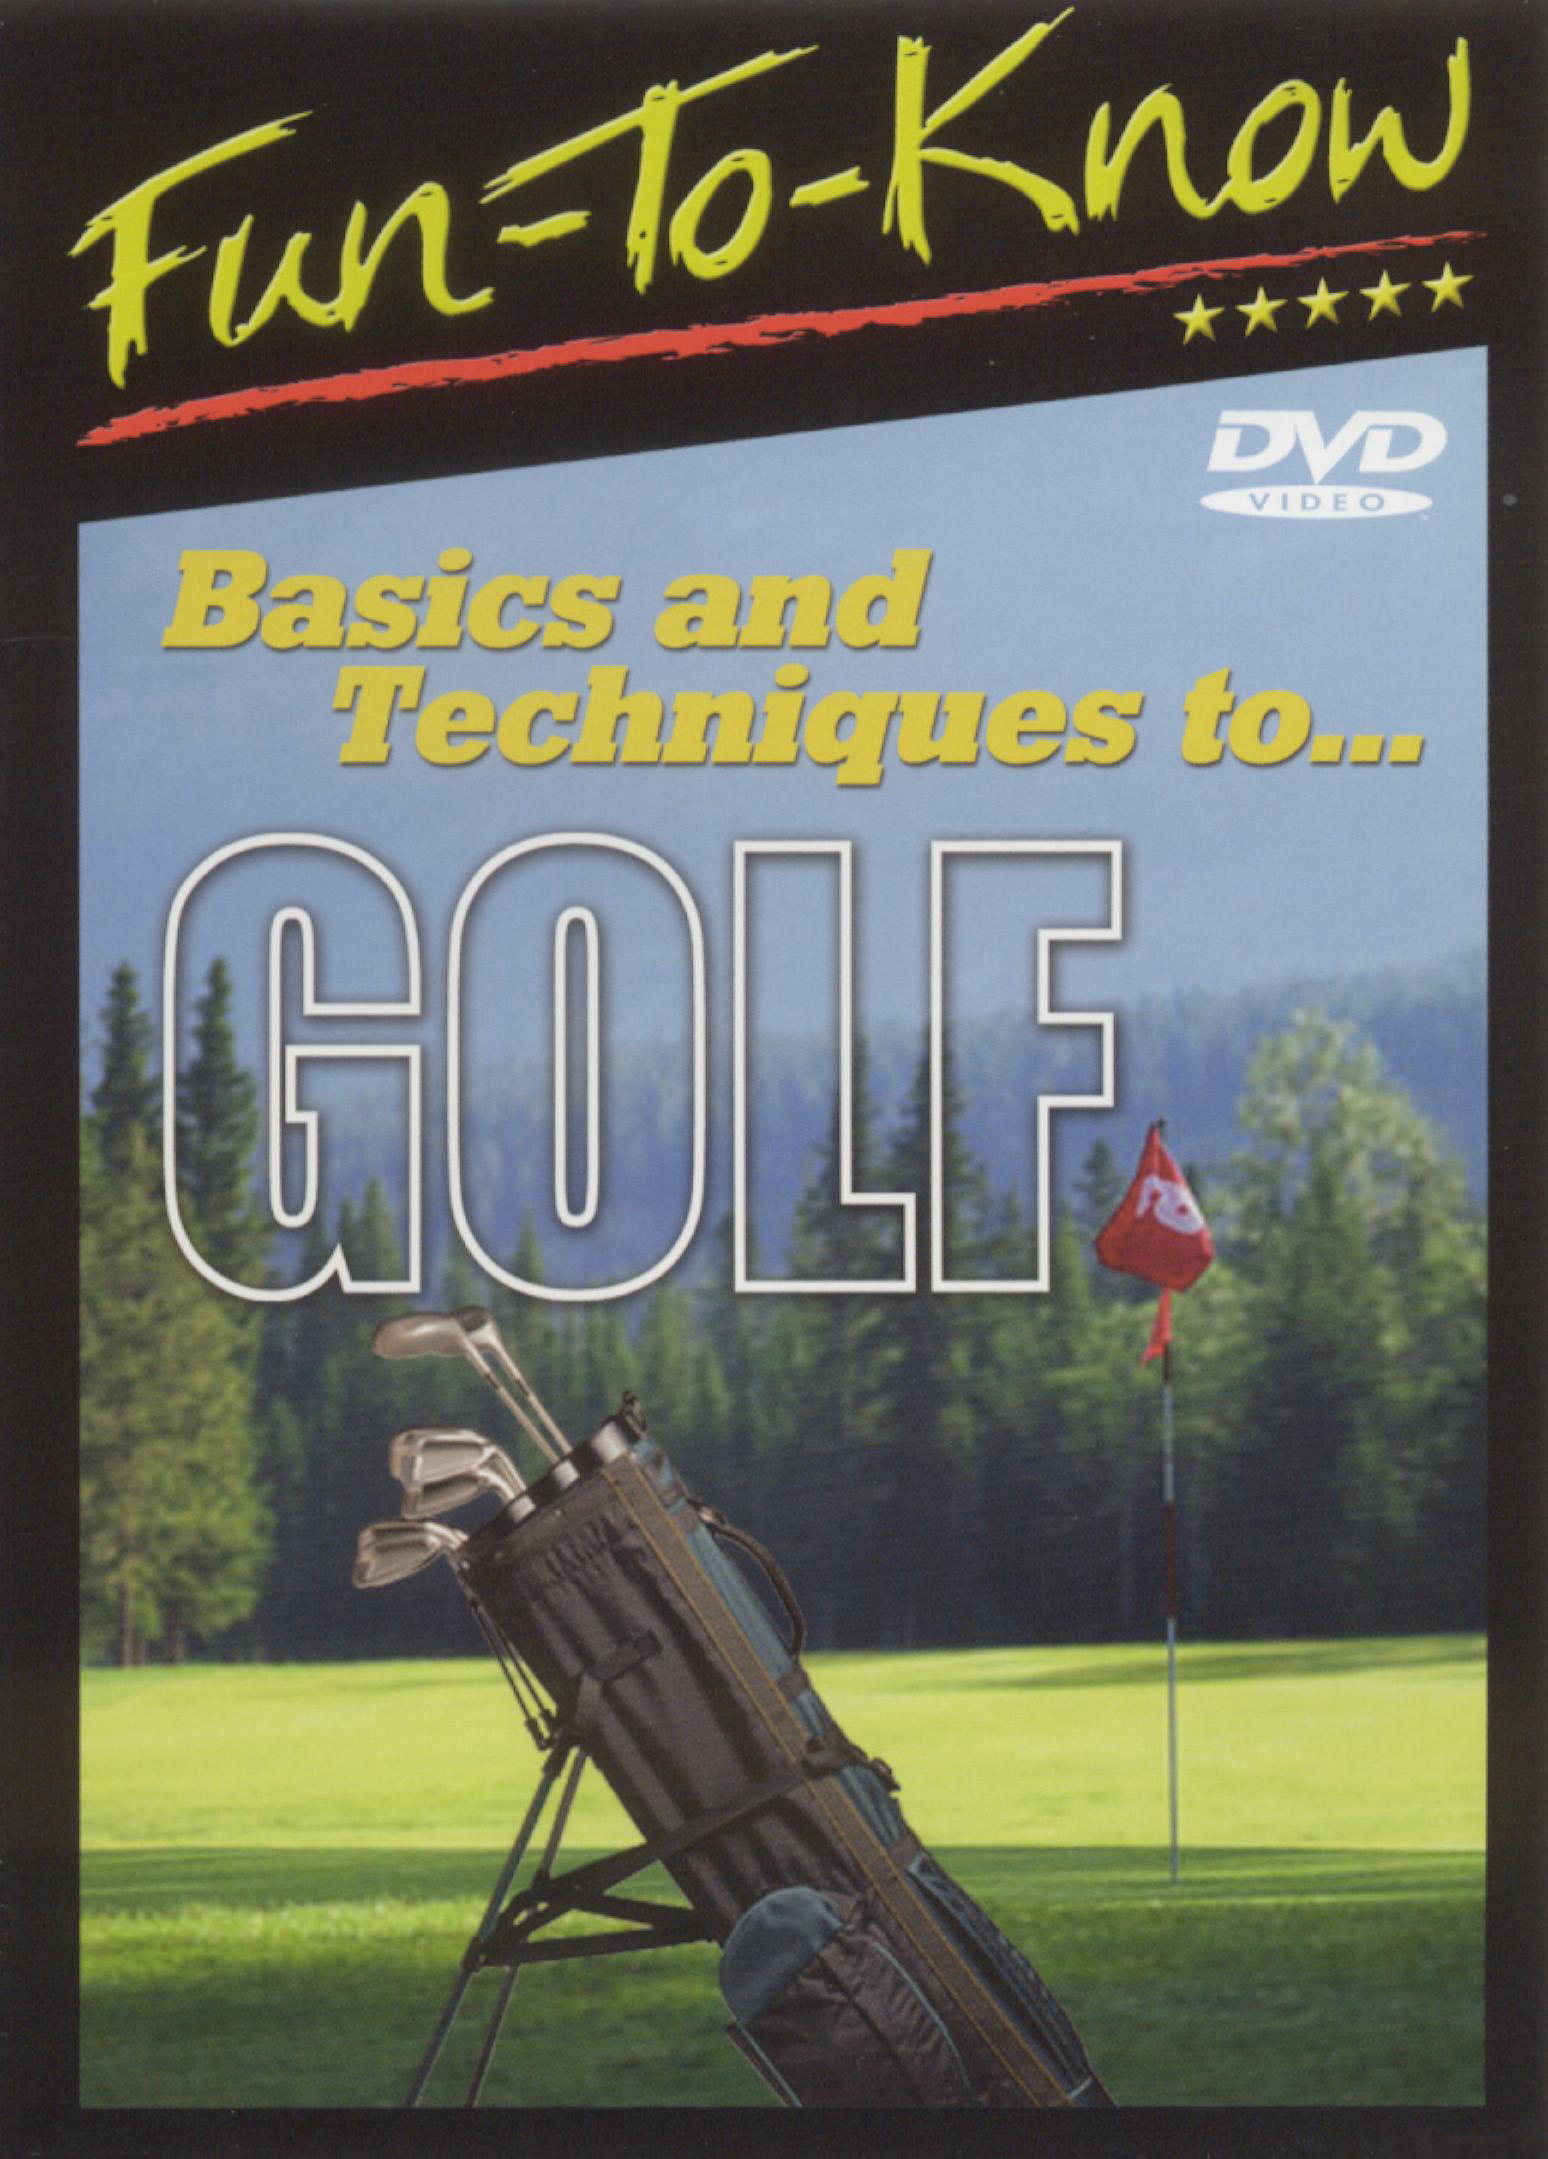 Fun To Know: Basics and Techniques Of Golf